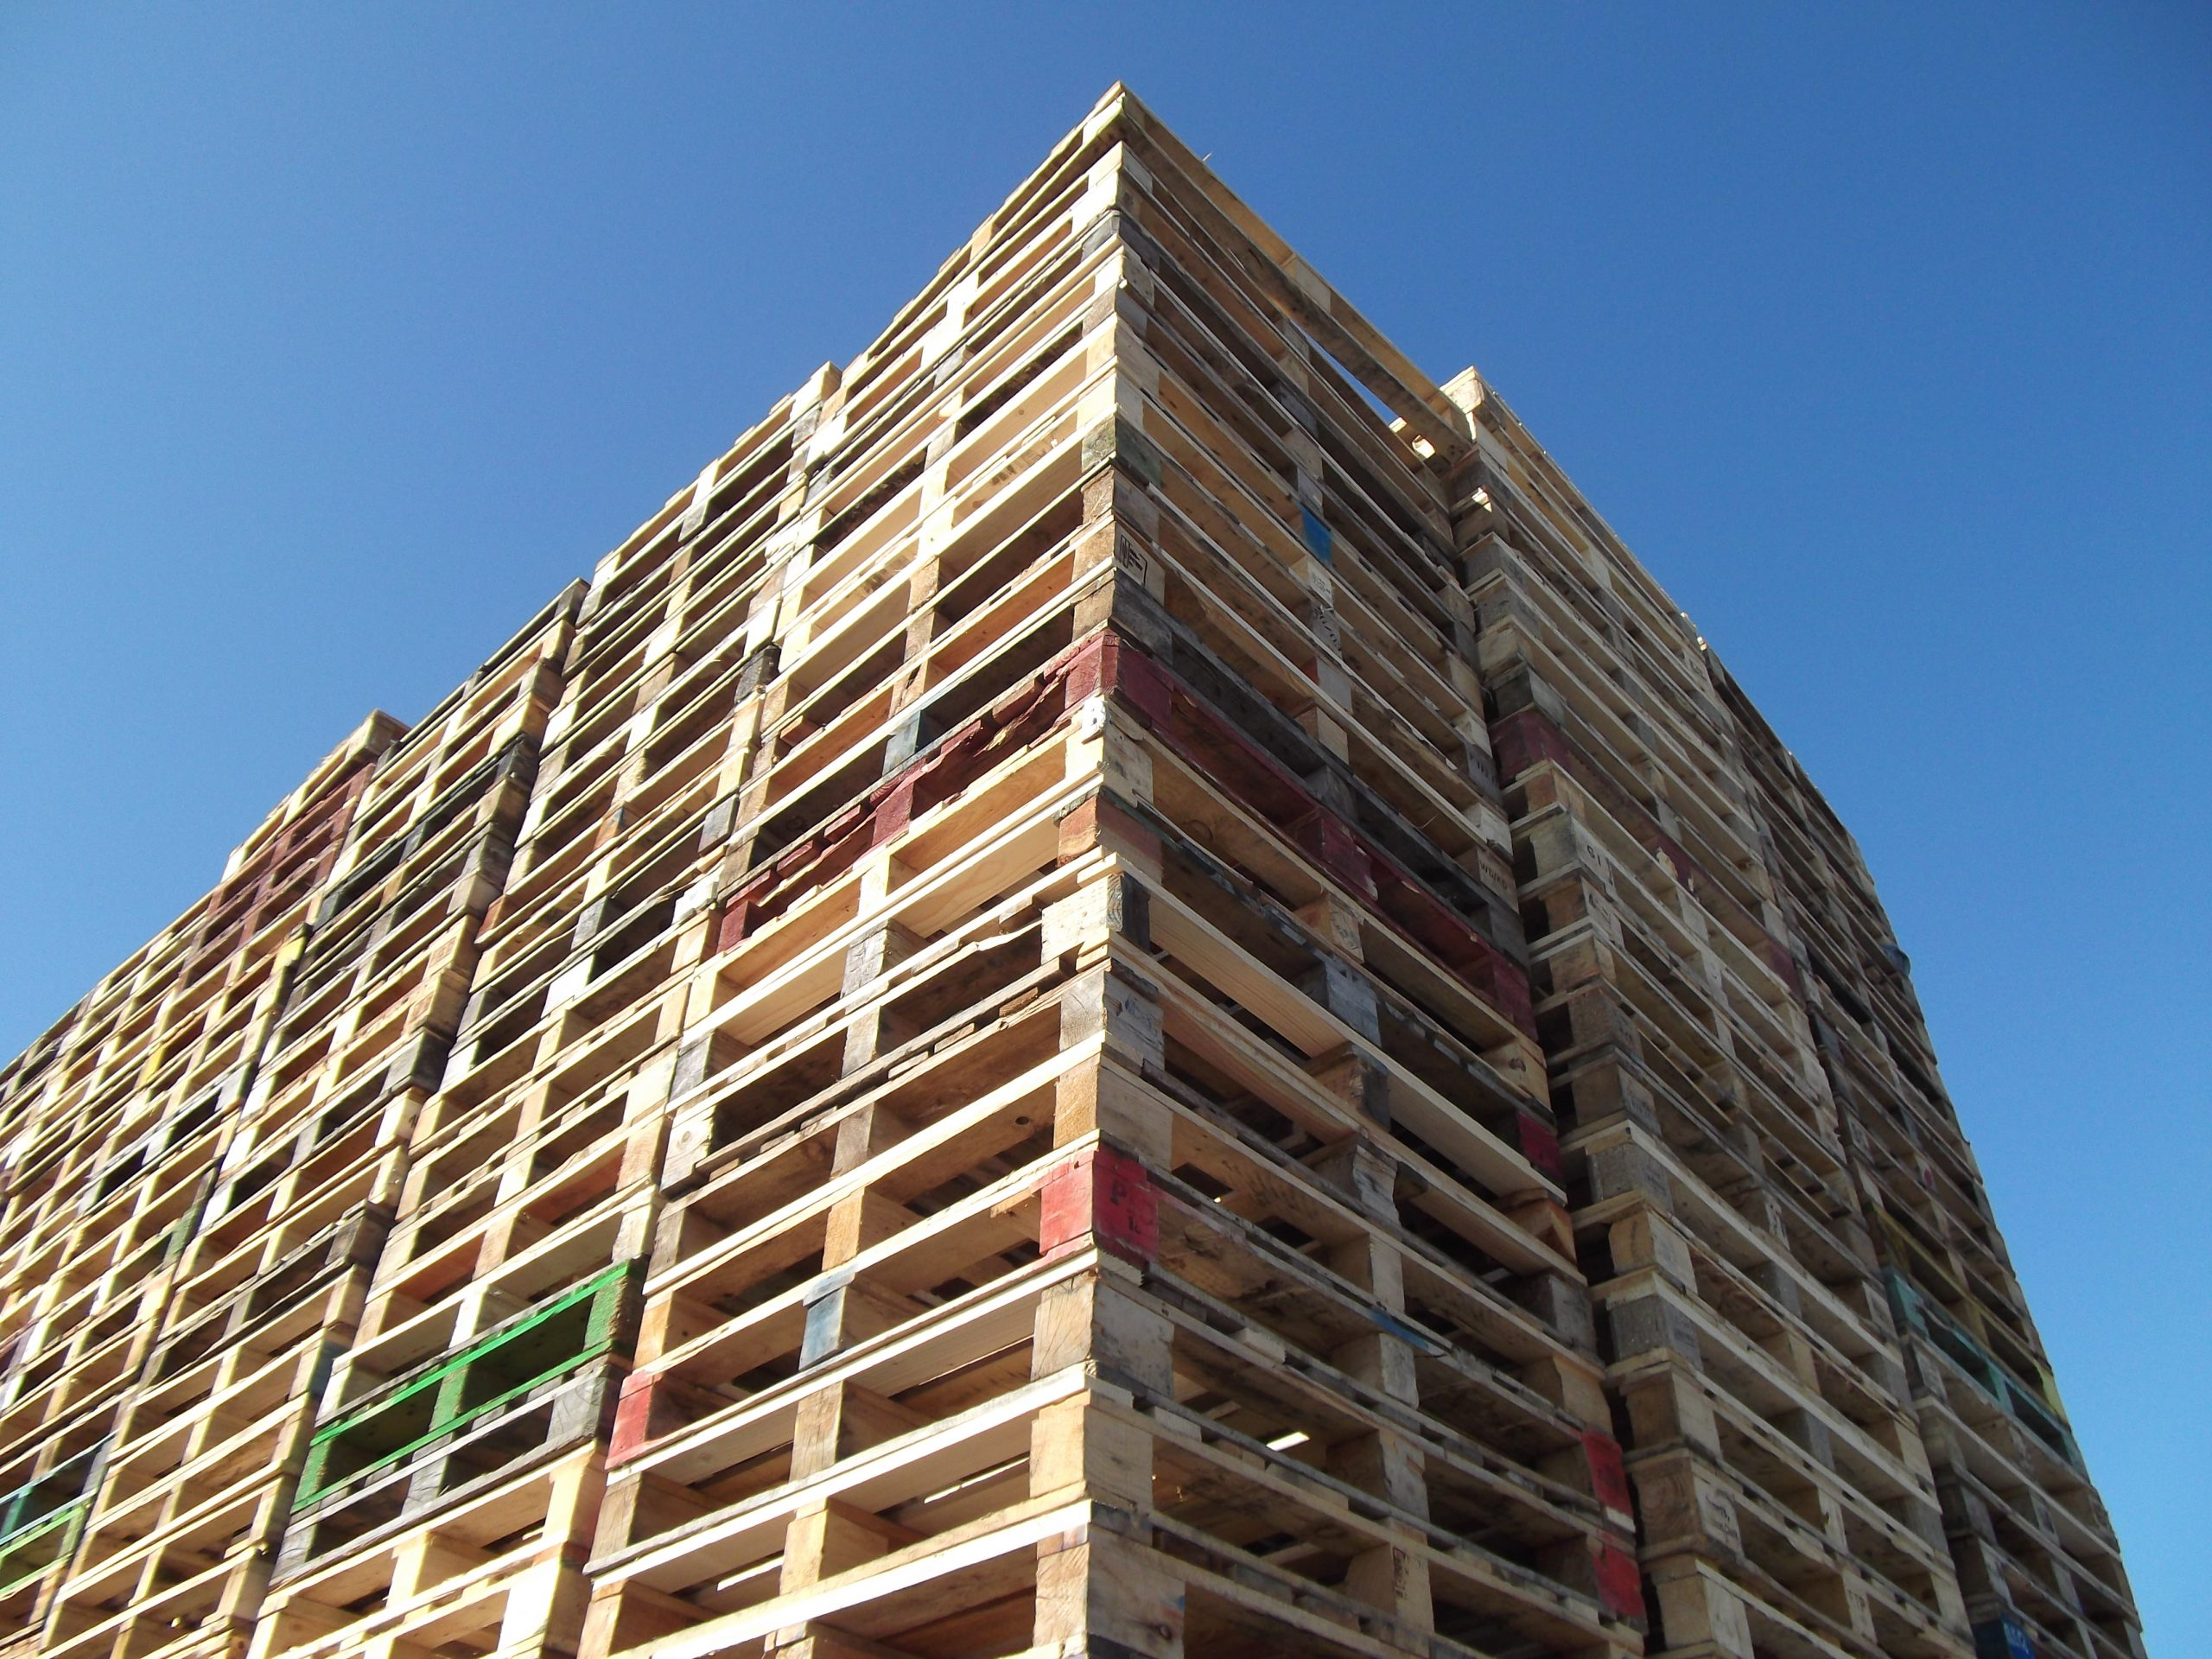 Stacks of used wooden pallets from The Log People Shropshire